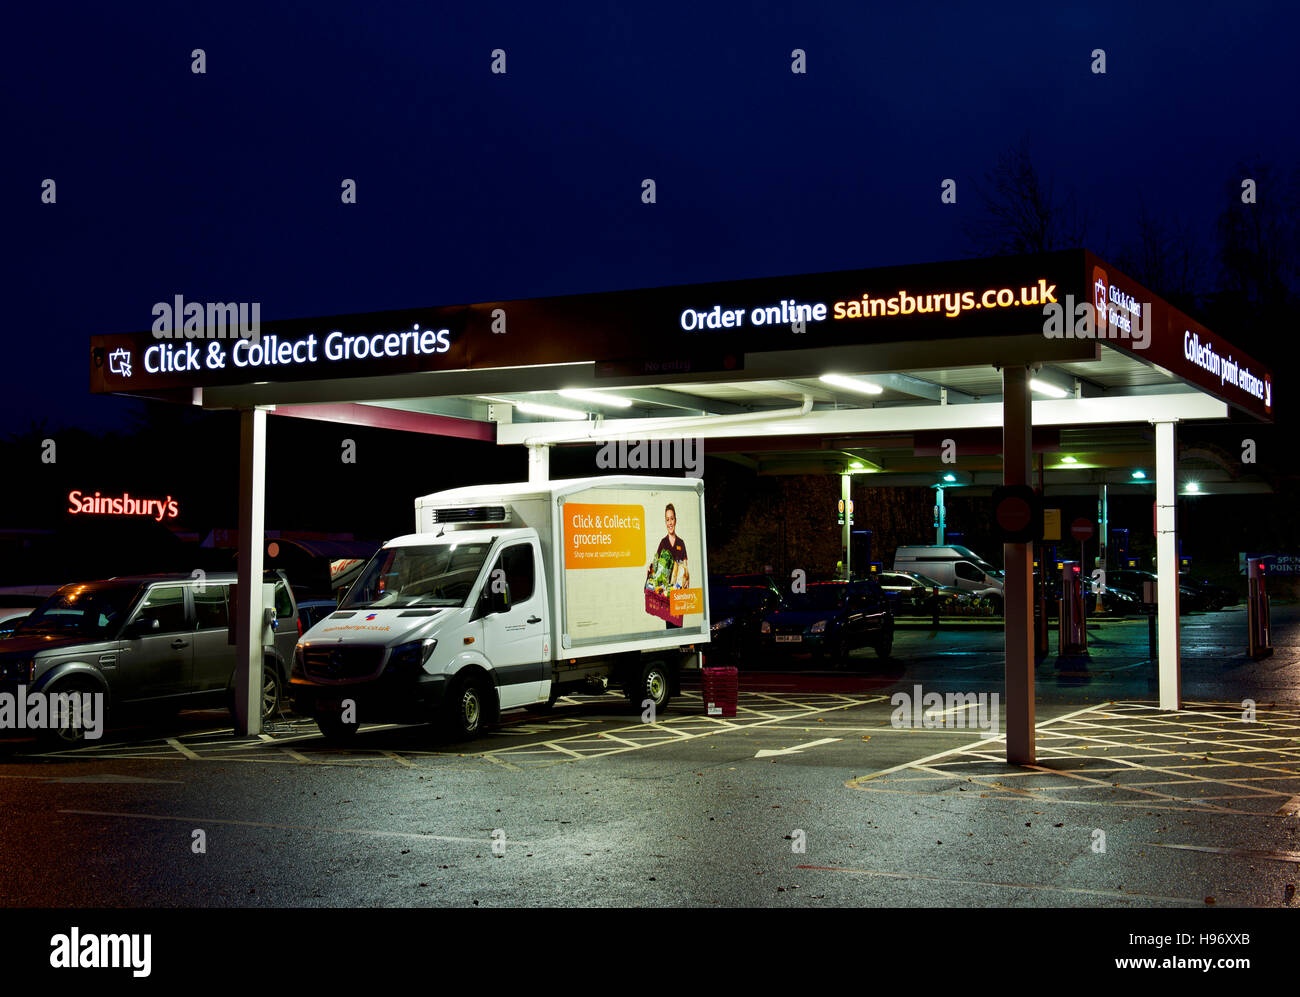 Delivery van parked in click & collection section of car park, Sainsbury's supermarket, England UK - Stock Image